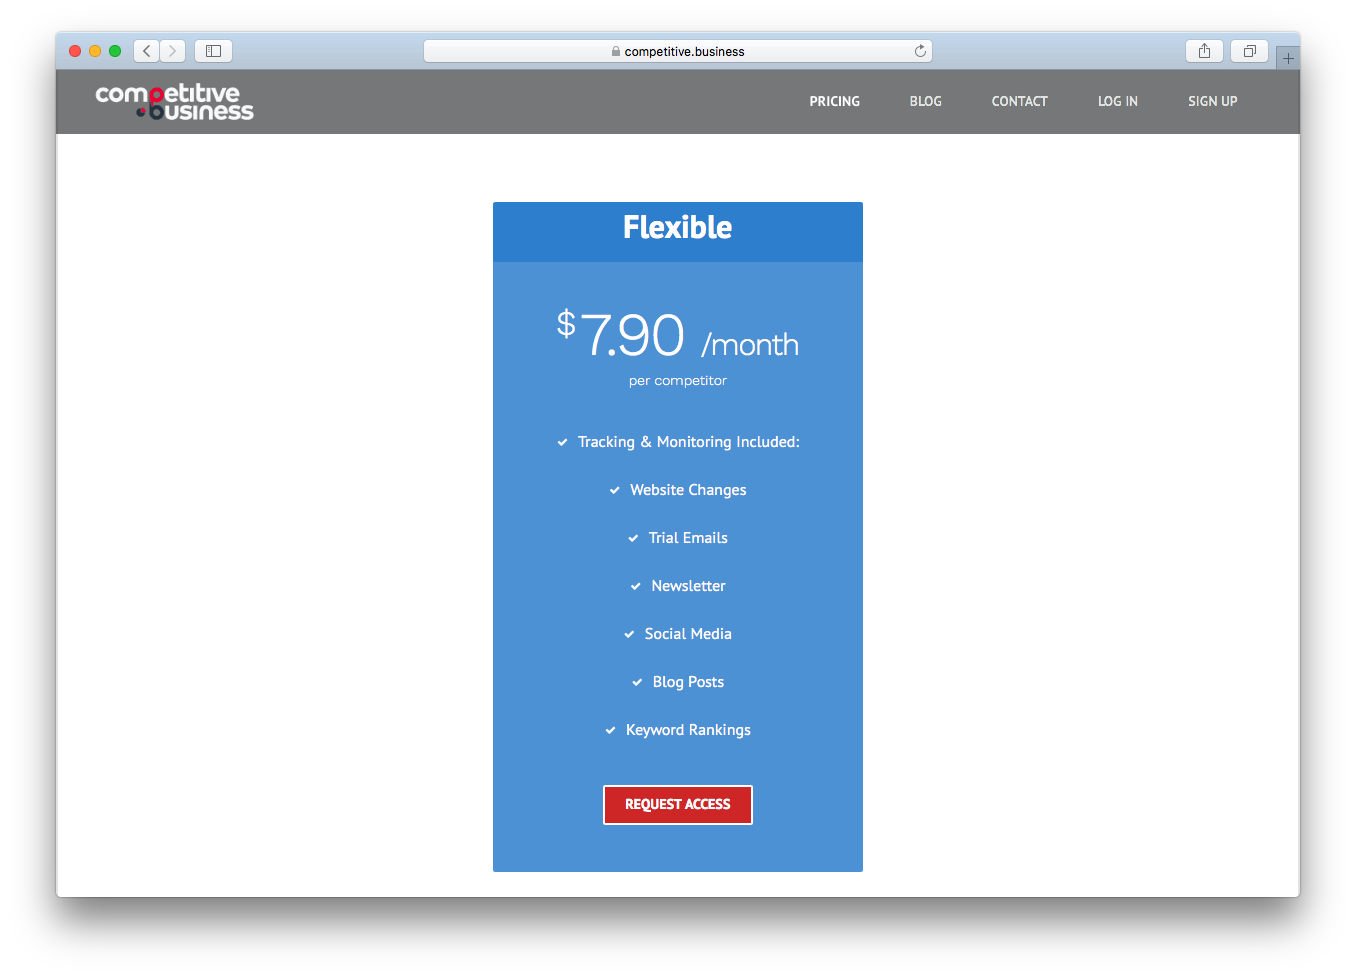 Pricing flexible Competitive Business